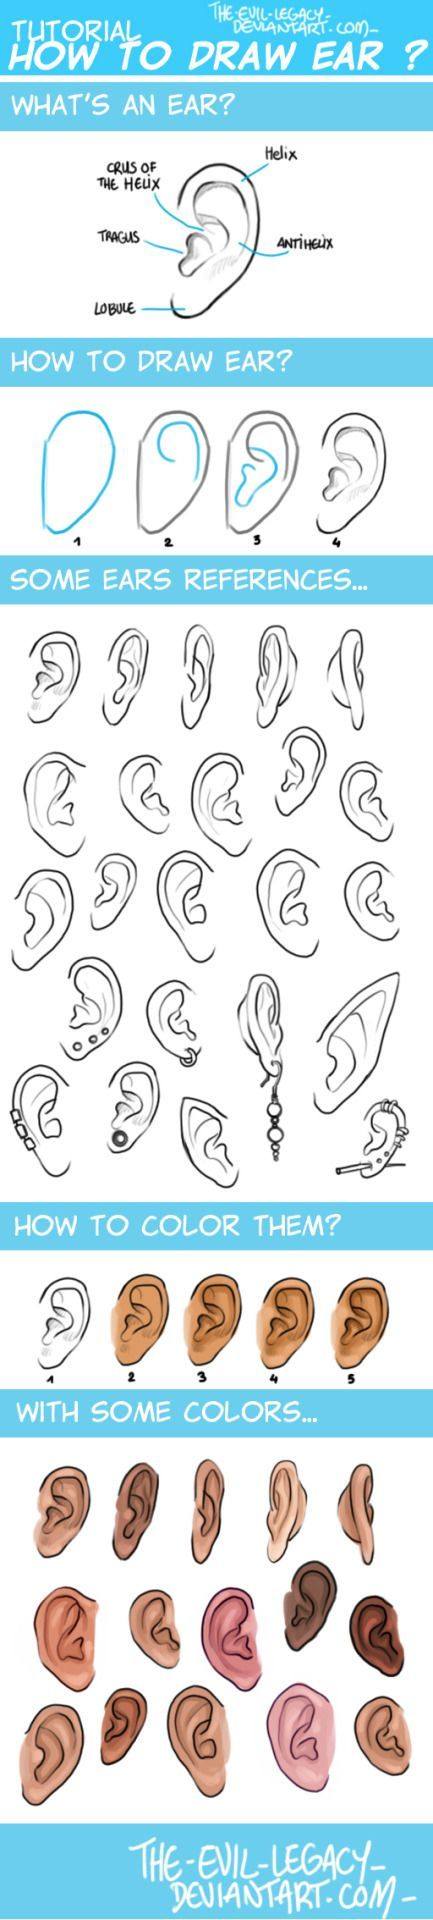 drawingden:  TUTO - How to draw ears? by the-evil-legacy: